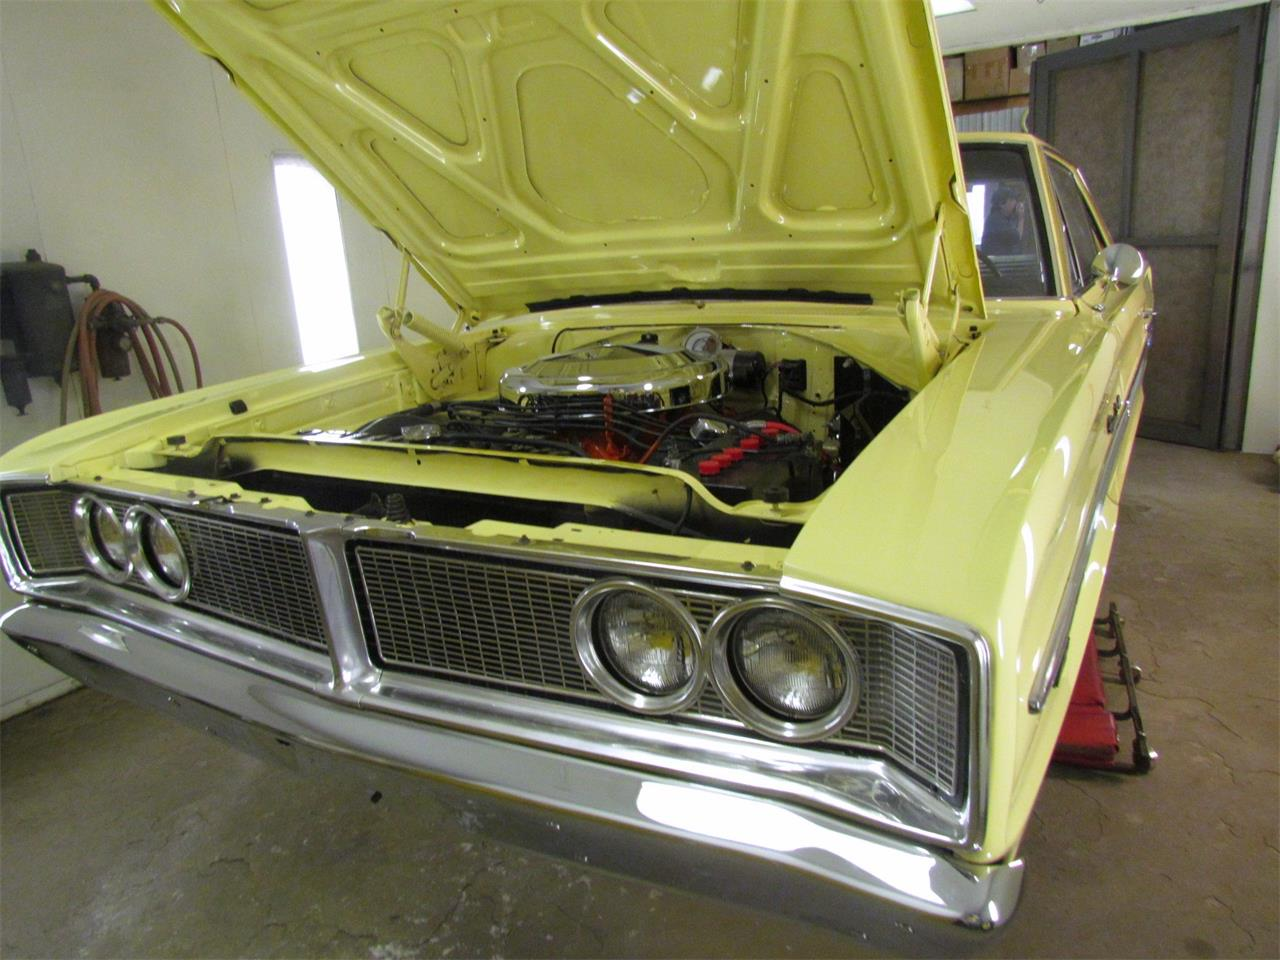 Large Picture of '66 Dodge Coronet 440 located in New Jersey - $65,000.00 Offered by a Private Seller - K56J